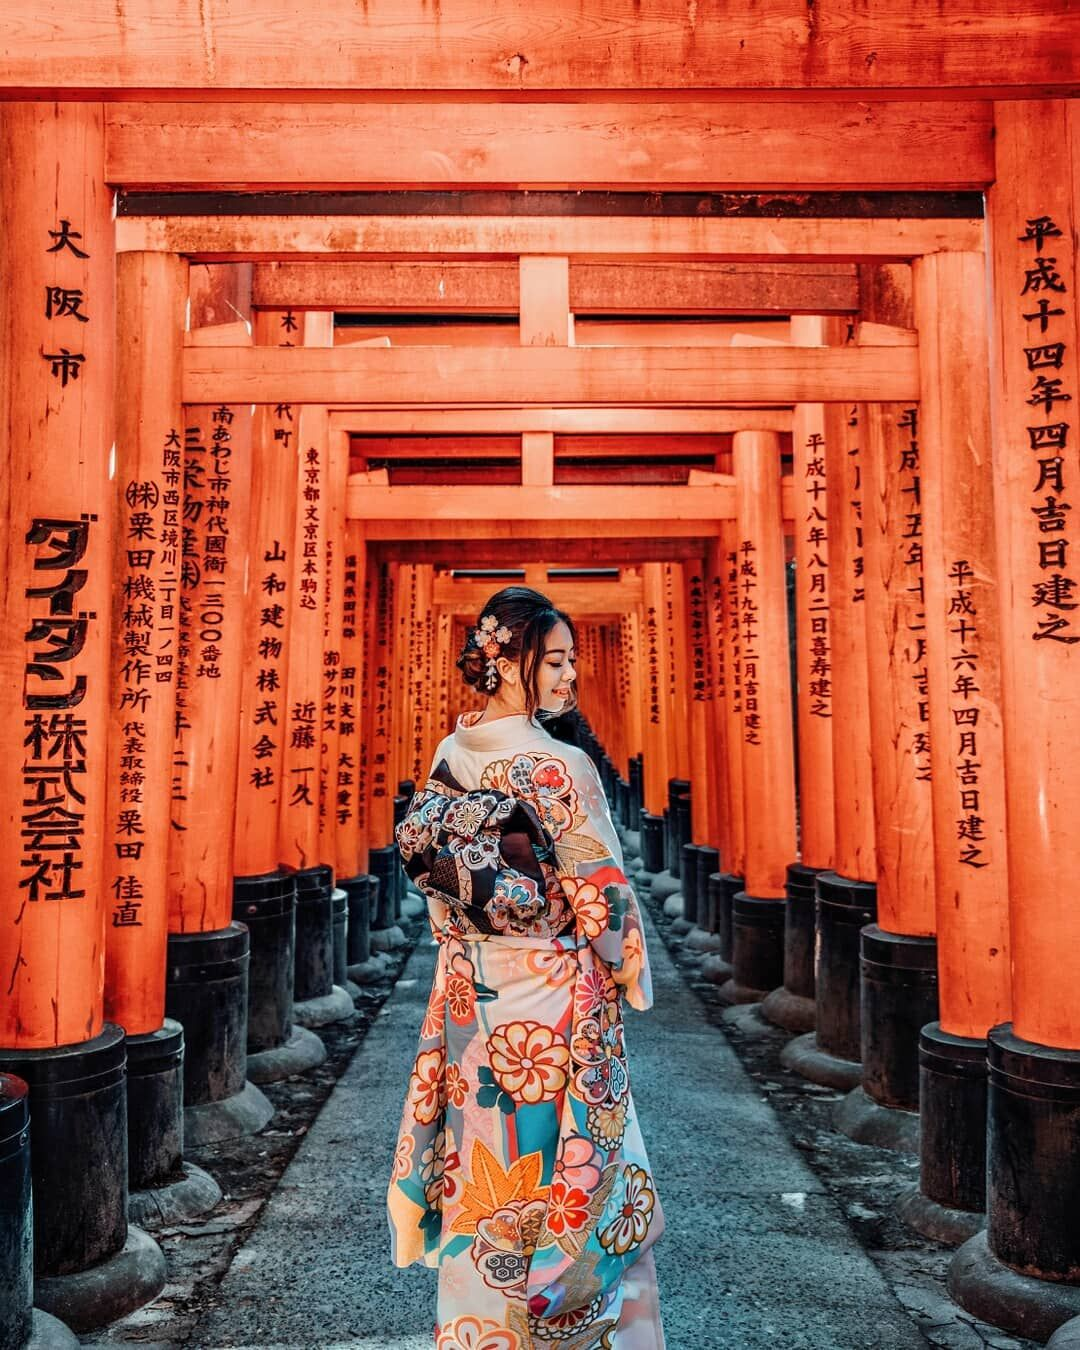 In Kyoto, you can walk under thousands of orange torii gates that lead up a hill to one of Japan's most popular shrines dedicated to the god of rice and sake.